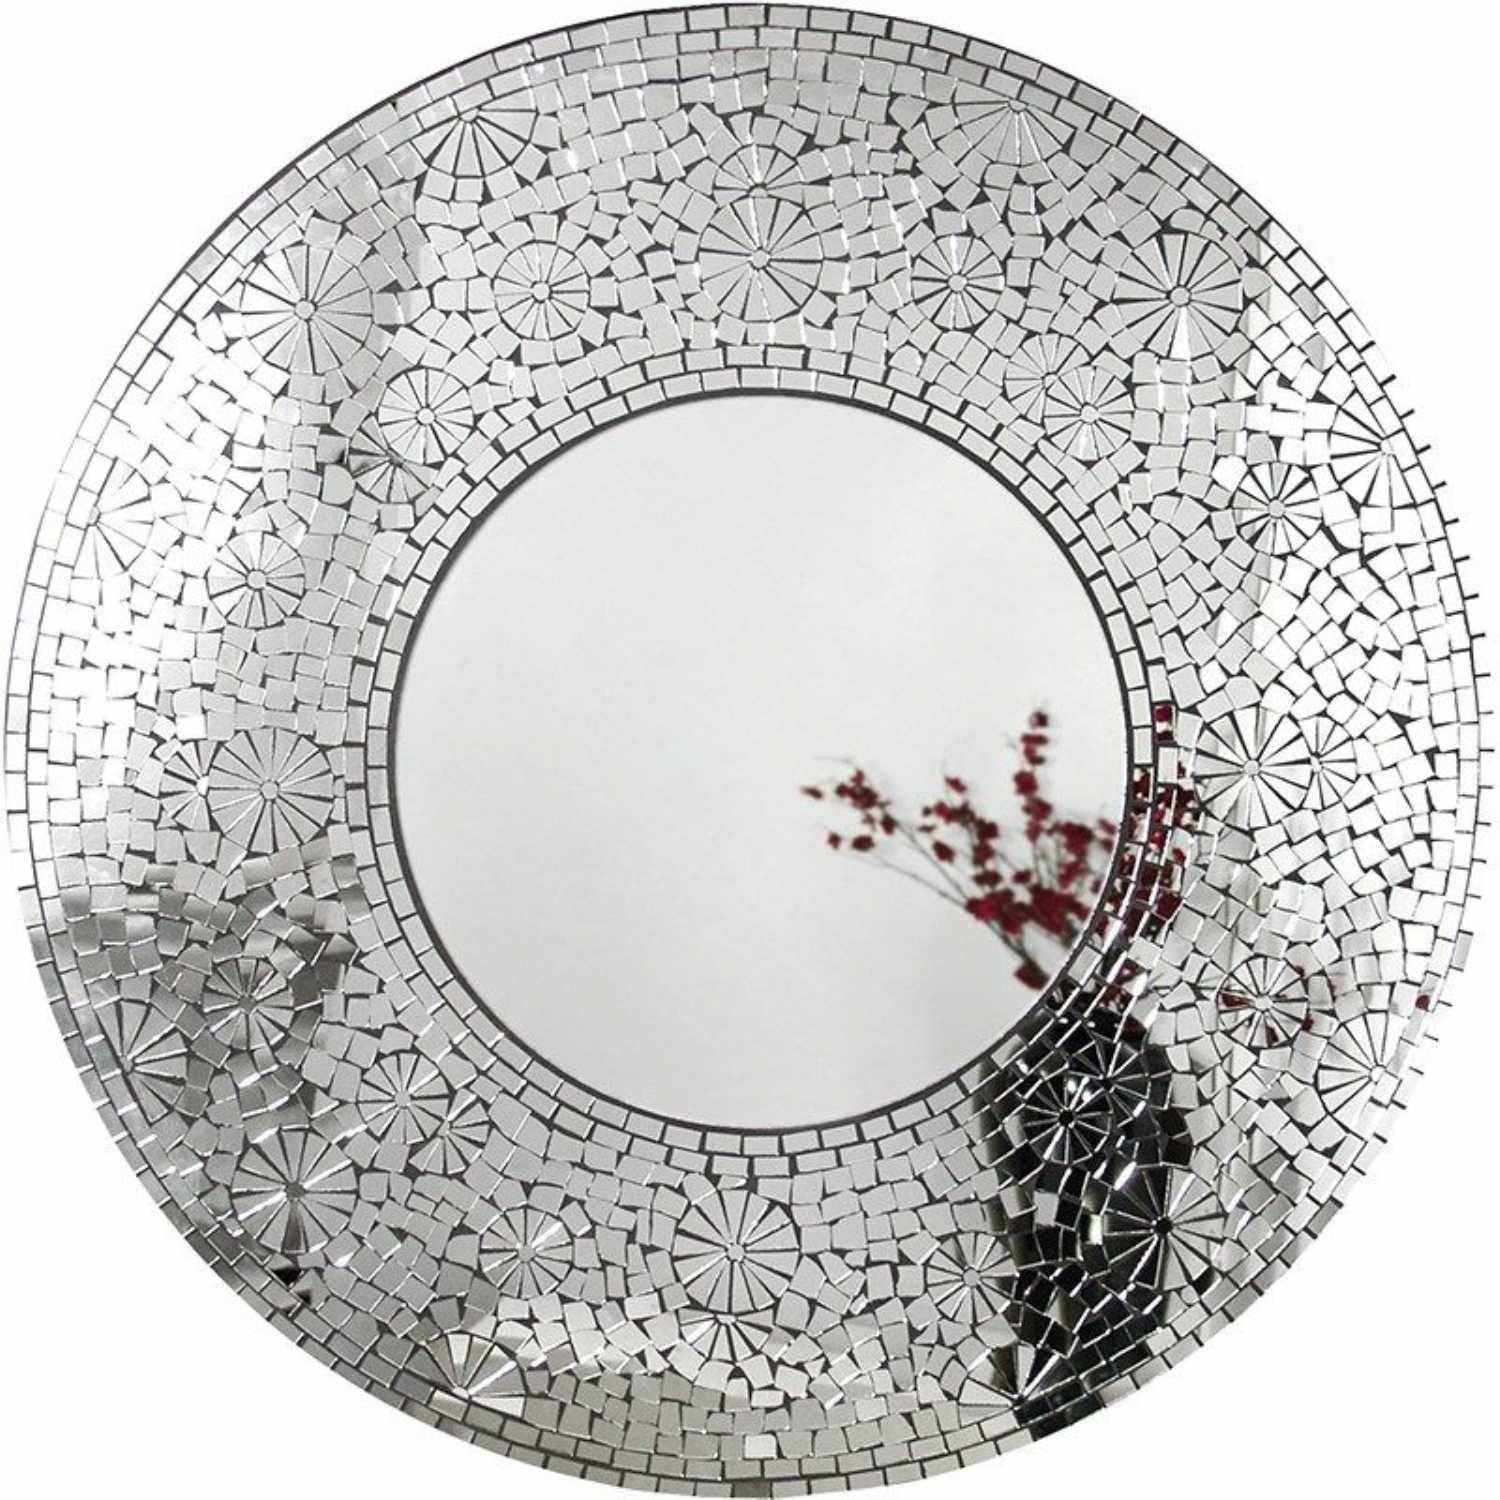 Round Silver Mirrors Walls - Round Designs intended for Silver Round Mirrors (Image 10 of 15)